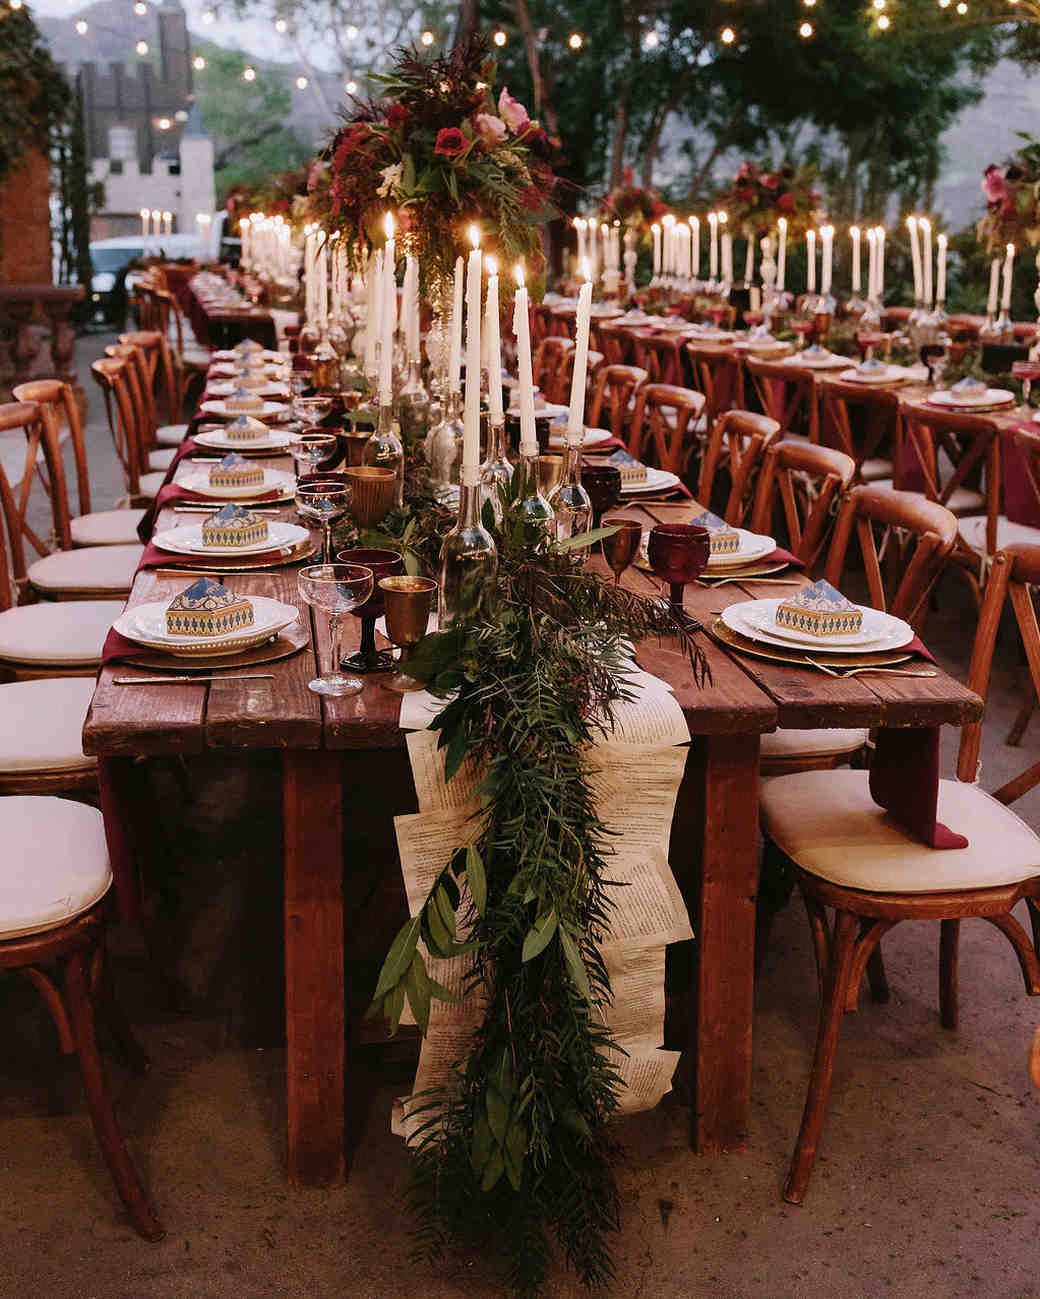 Real Weddings Decorations: Outdoor Wedding Lighting Ideas From Real Celebrations